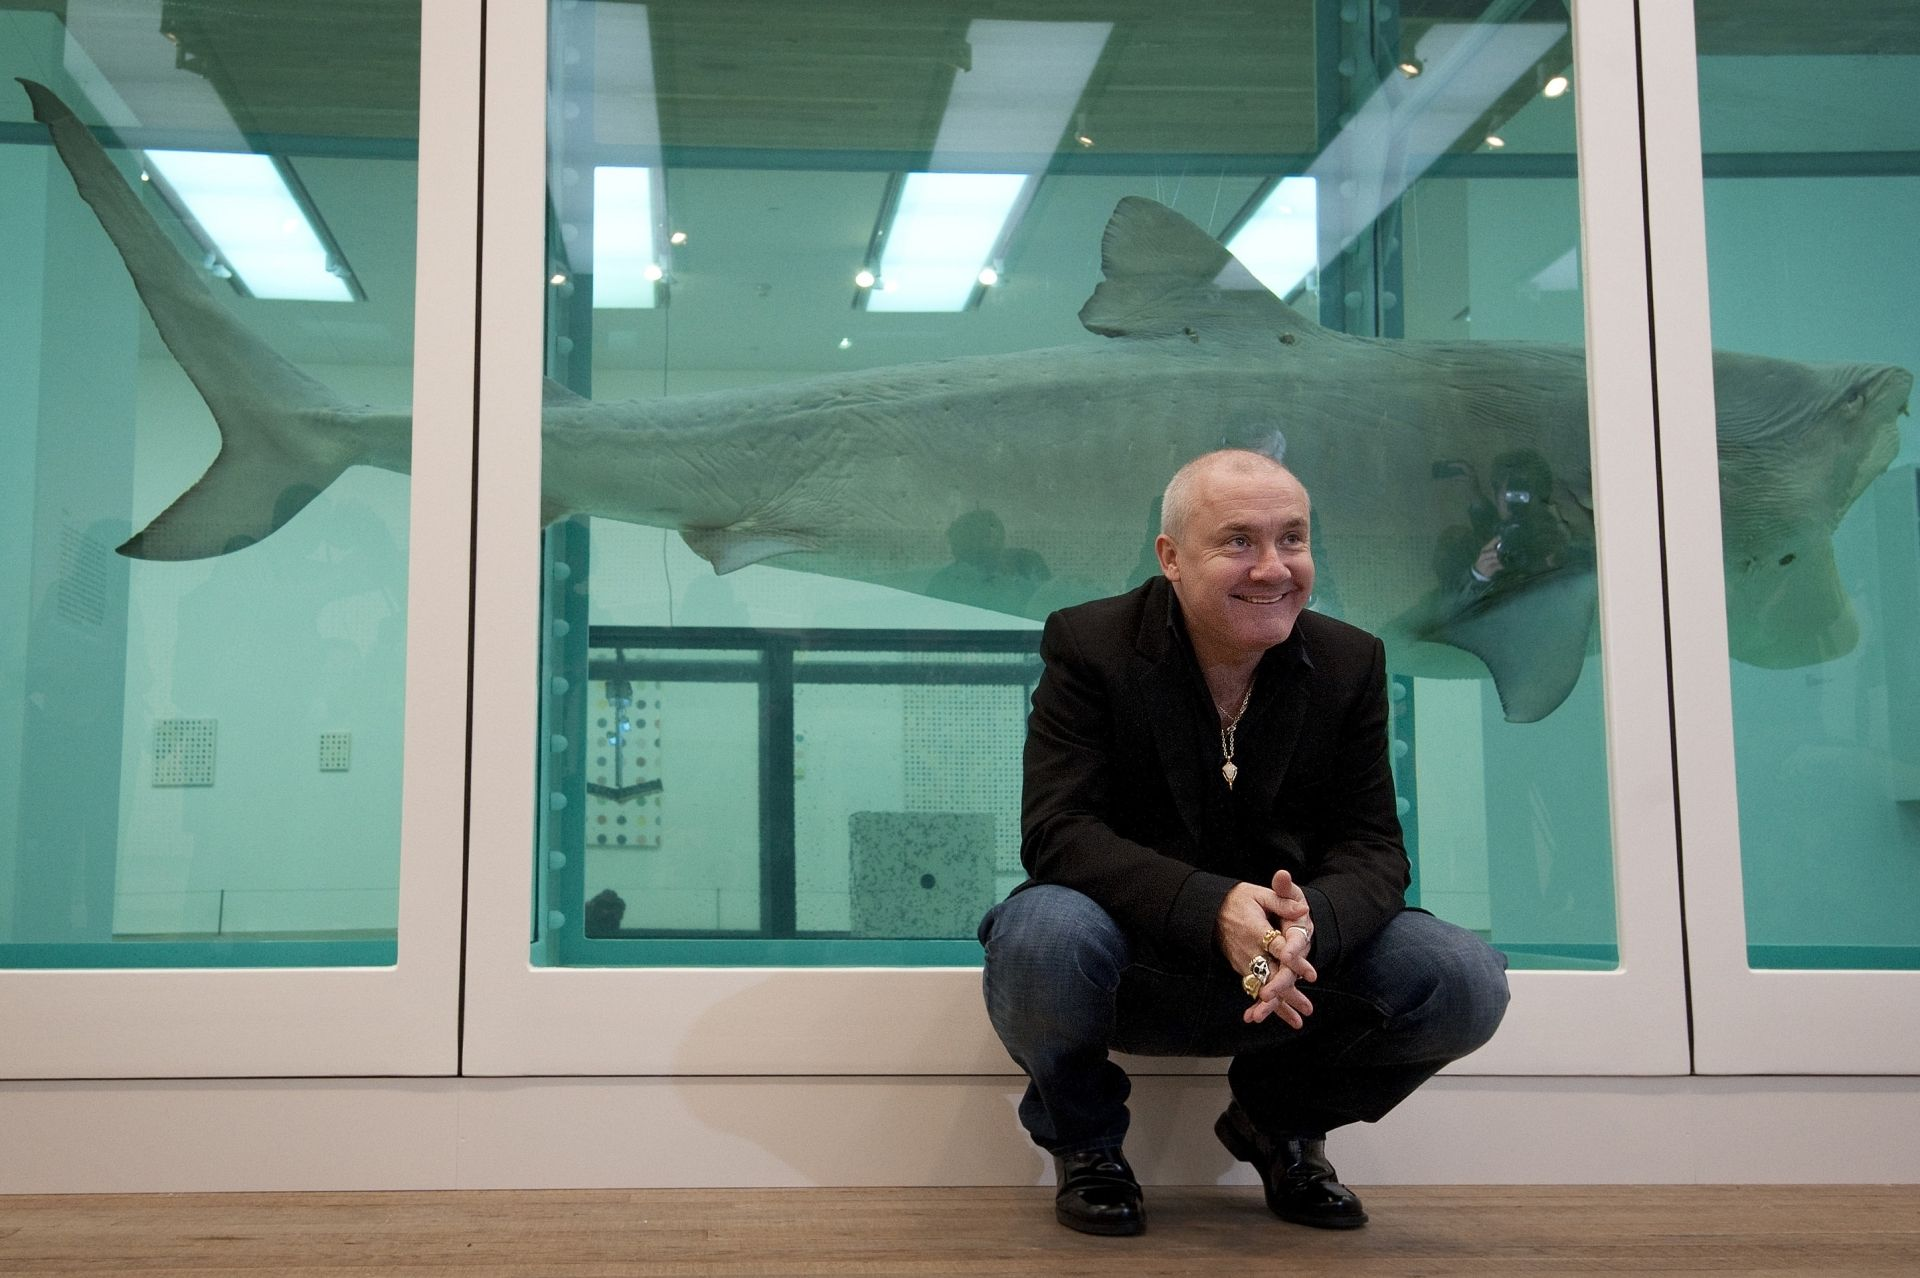 British artist Damien Hirst poses for photographers next to his 1991 work 'The Physical Impossibility of Death in the Mind of Someone Living' during the opening of his solo exhibition showcasing work spanning over two decades at the Tate Modern in central London on April 2, 2012. AFP PHOTO / BEN STANSALL (Photo by BEN STANSALL / AFP)